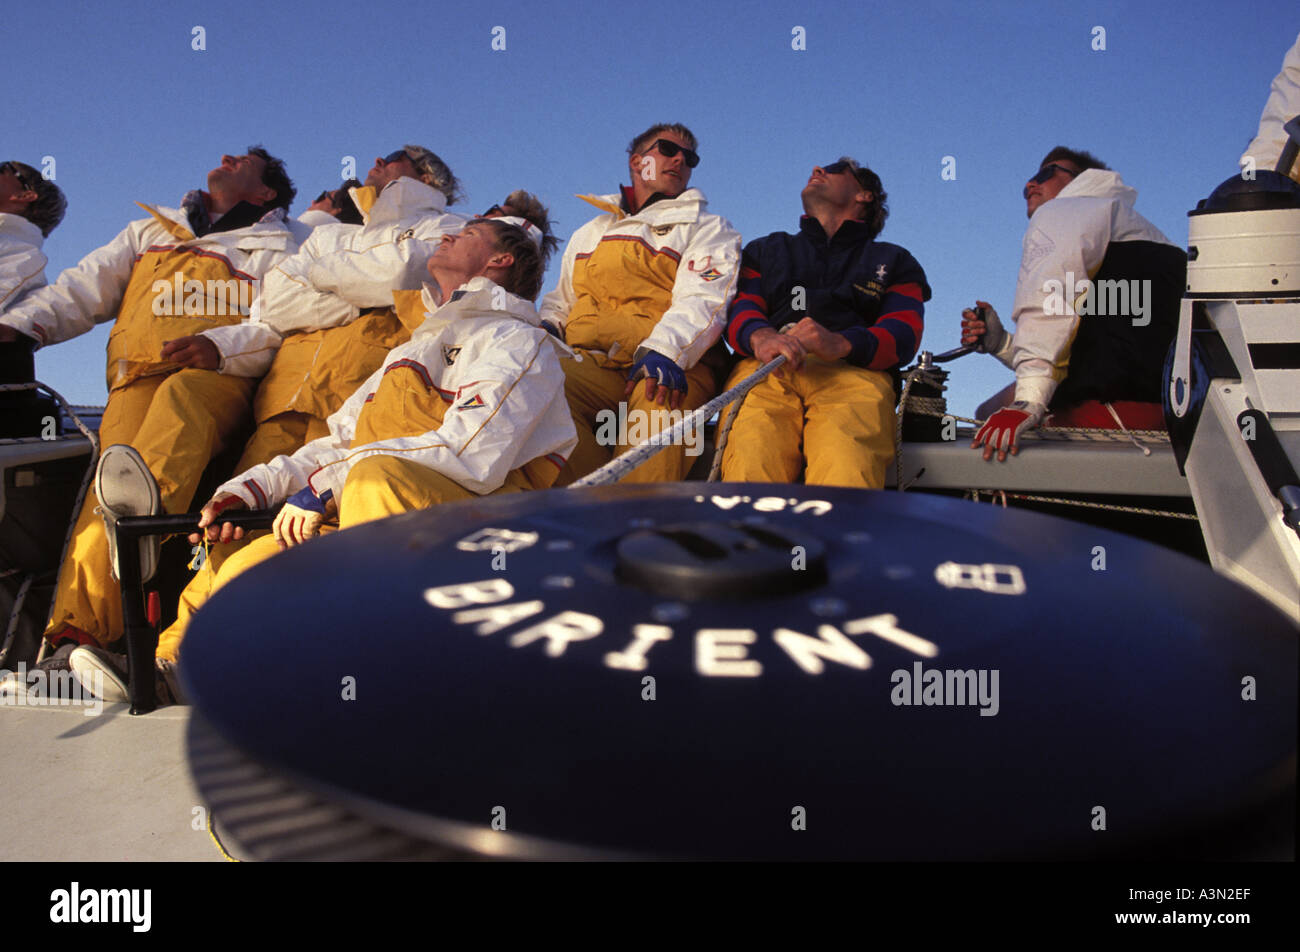 The sailing crew line behind a winch on board sail trimming - Stock Image